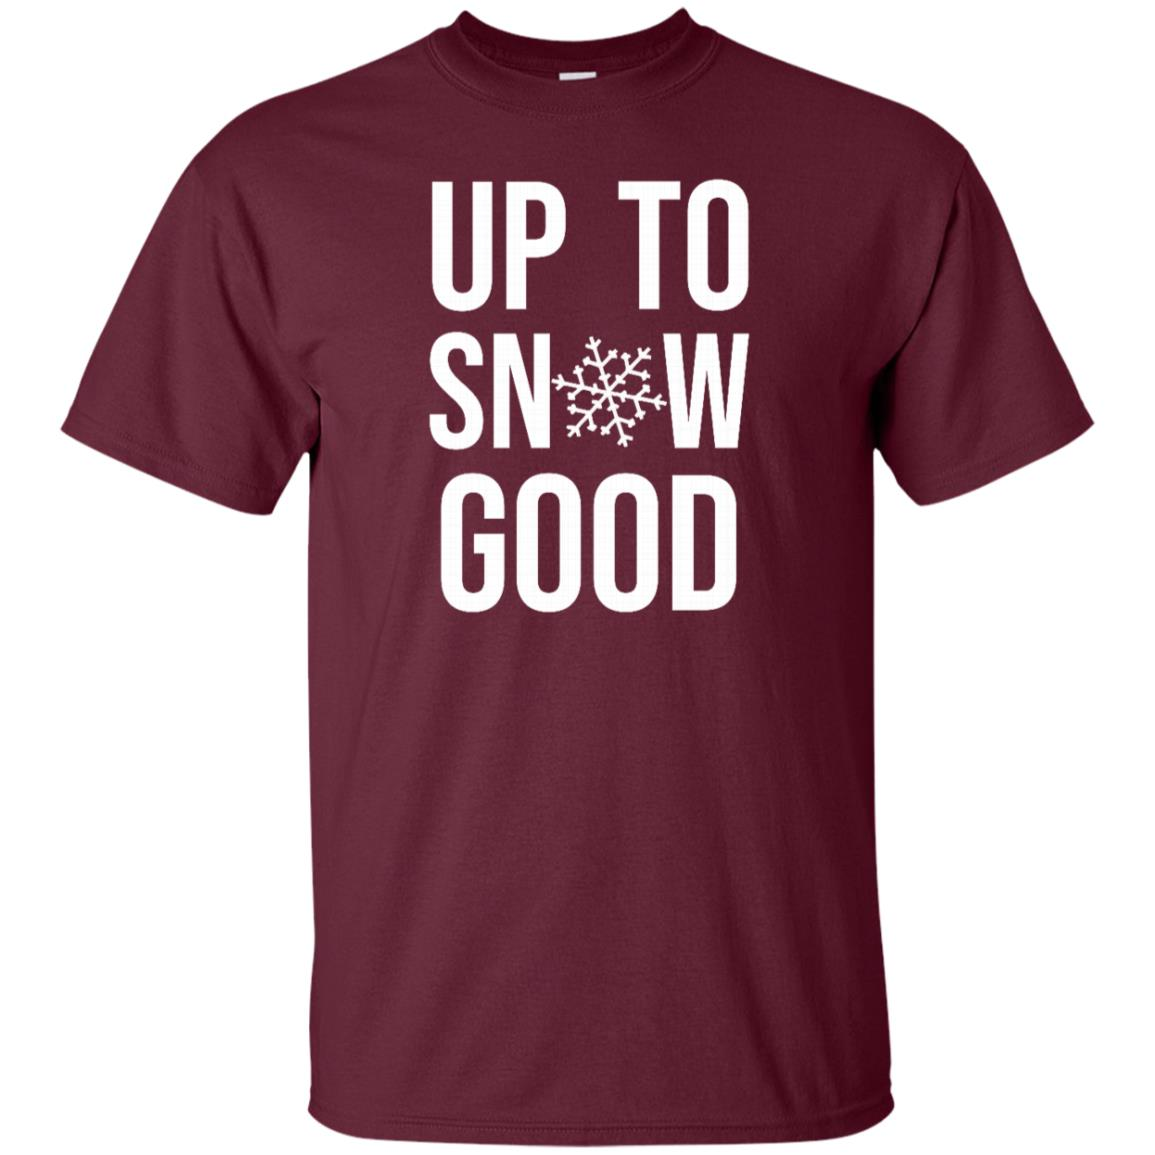 Up to Snow Good for Men Women Kids,Cool Holiday Gifts Youth Short Sleeve